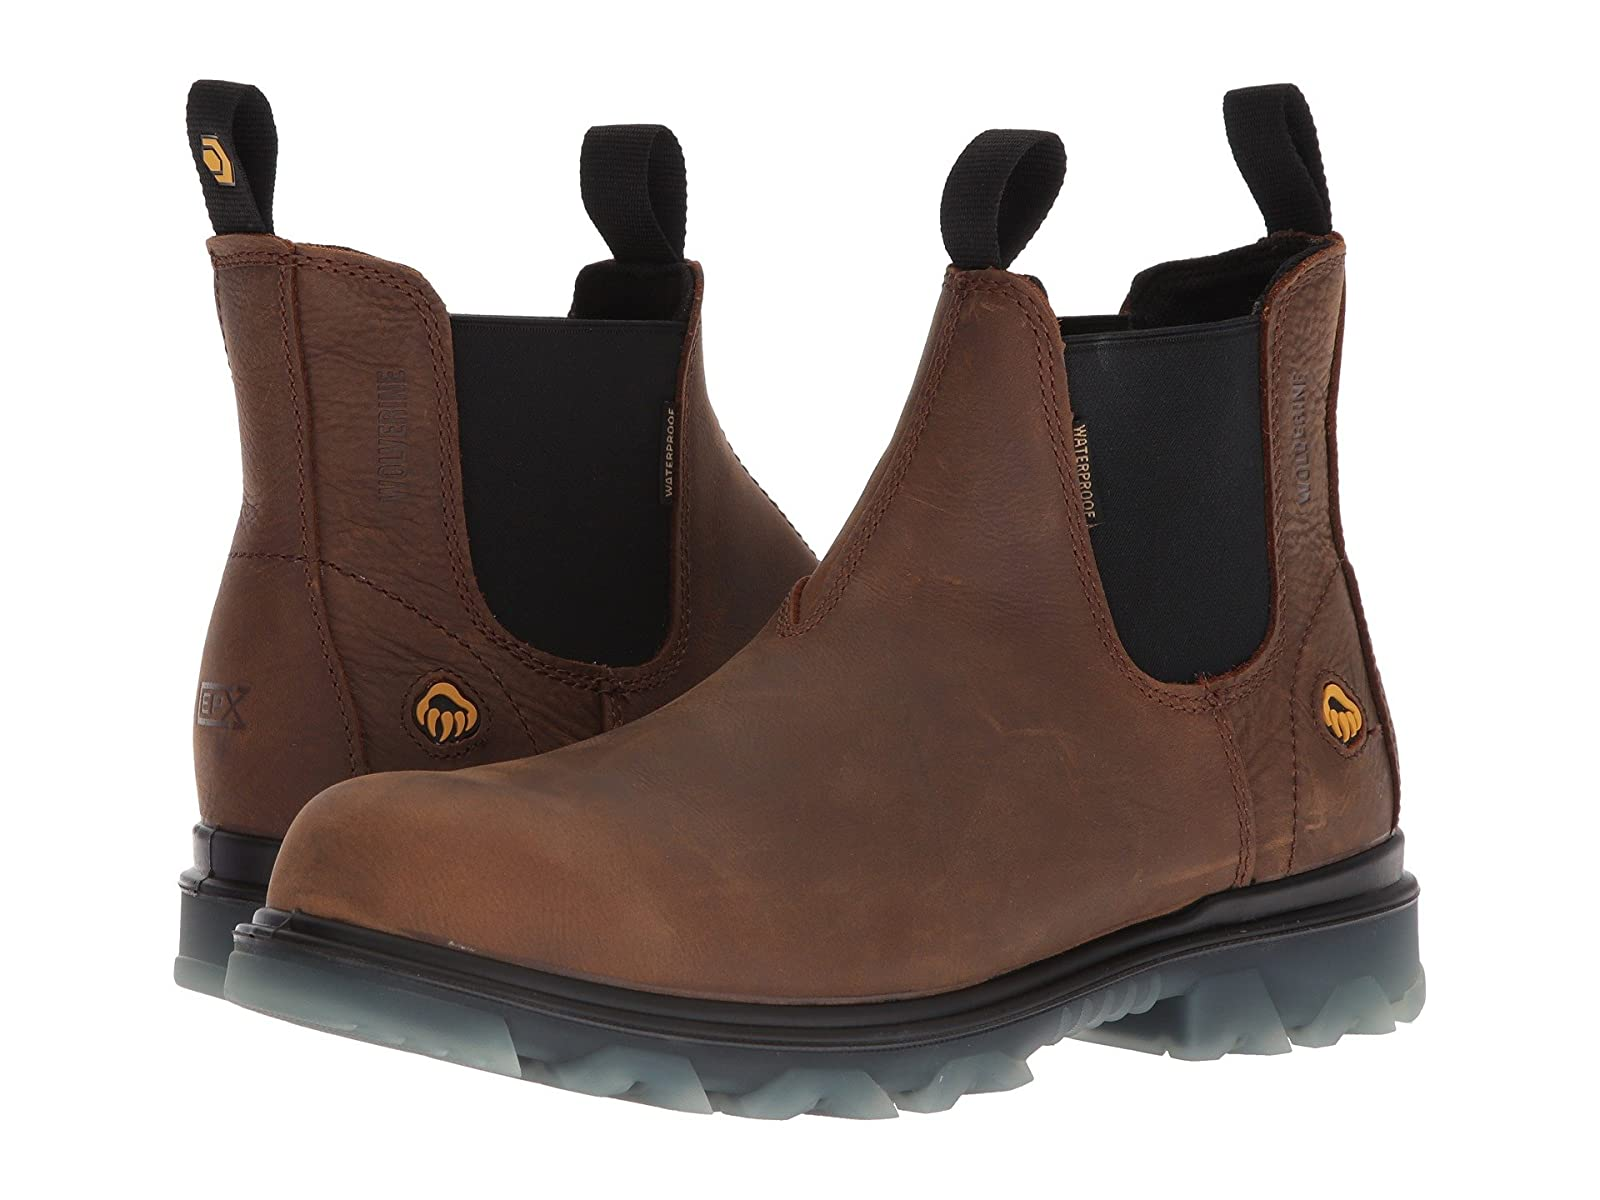 Wolverine I-90 EPX Romeo CarbonMaxEconomical and quality shoes